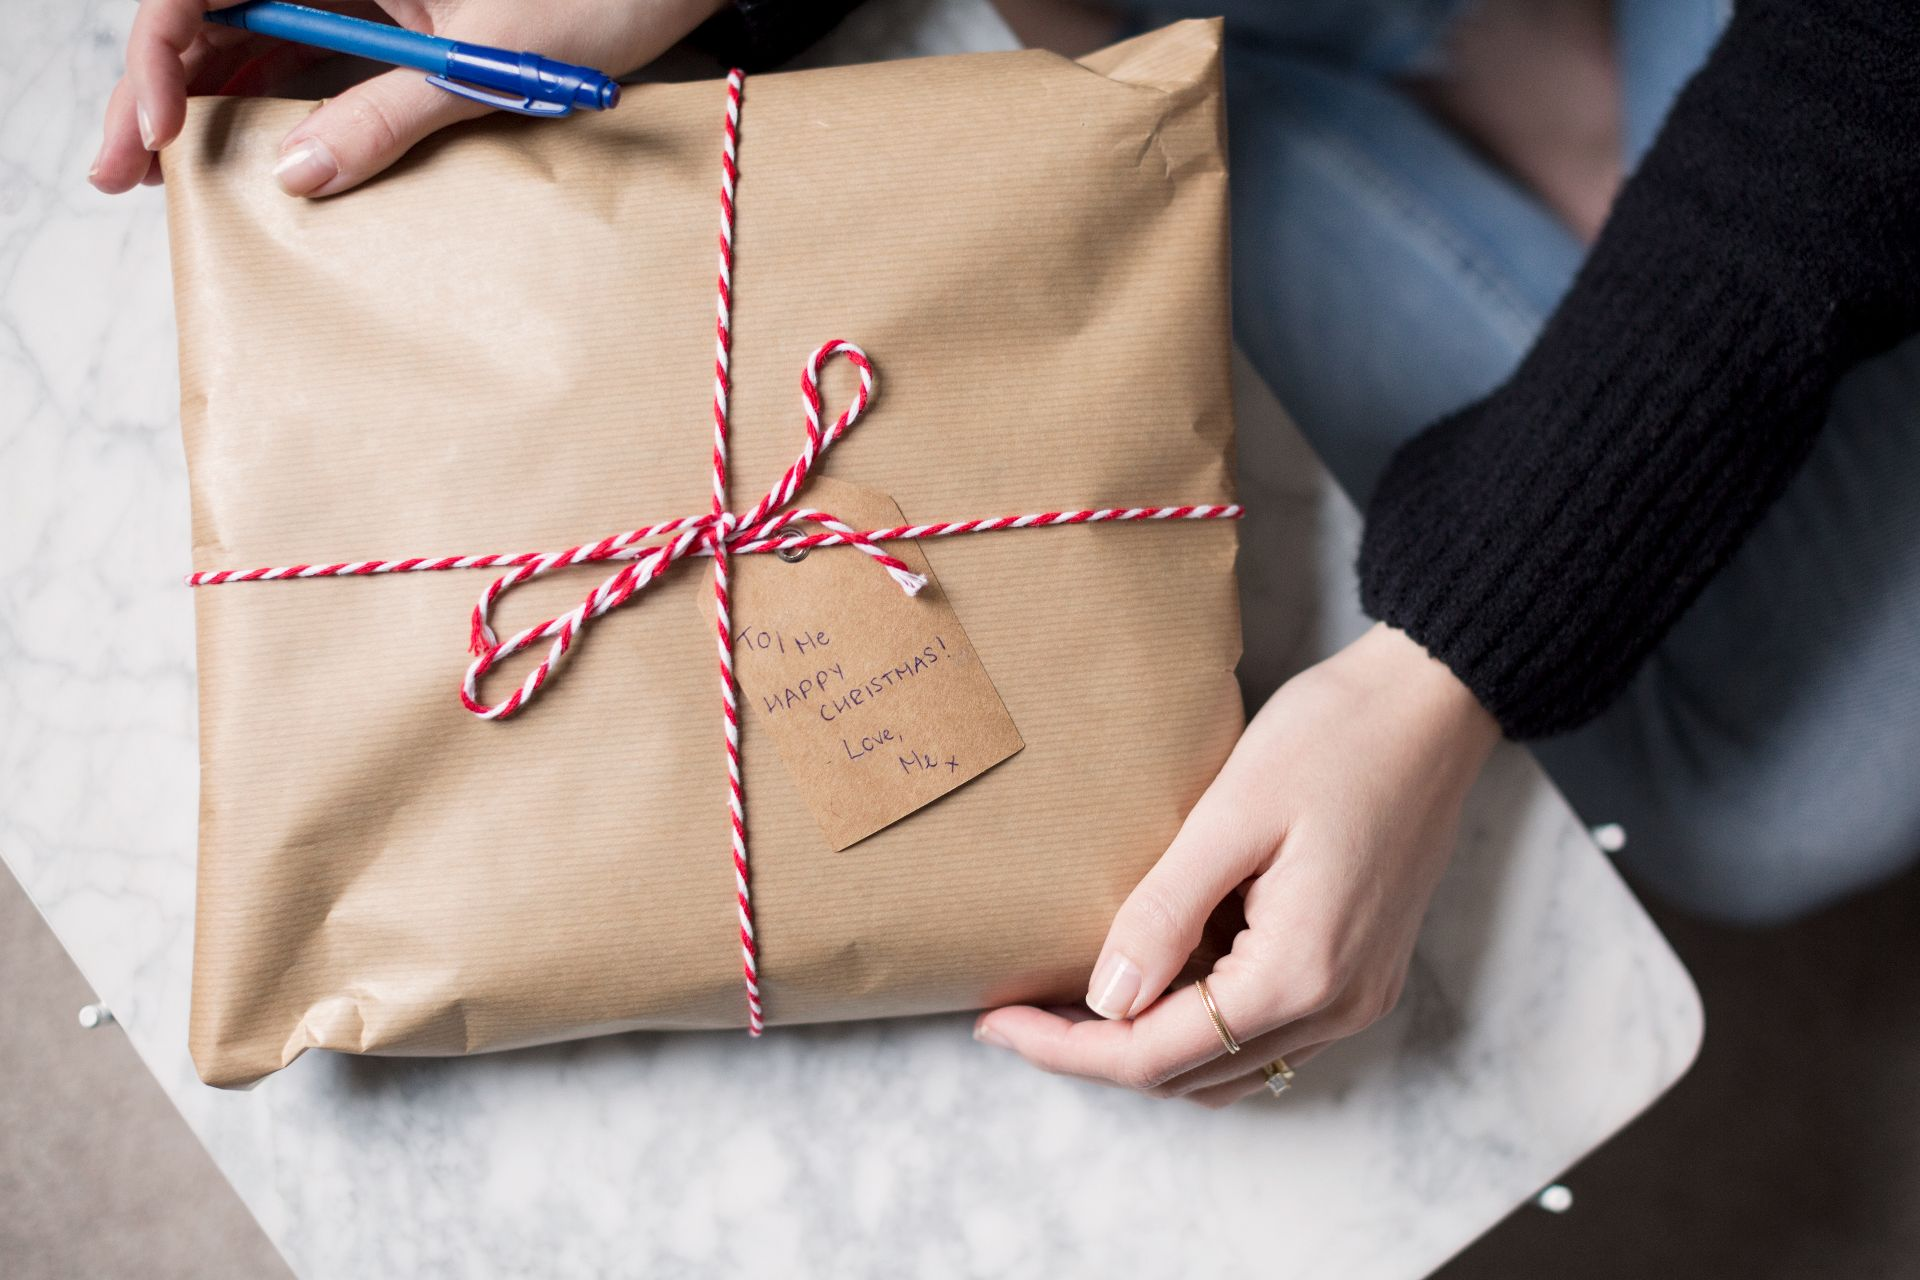 theannaedit-christmas-gifts-wrapping-gift-ideas-november-2017-9